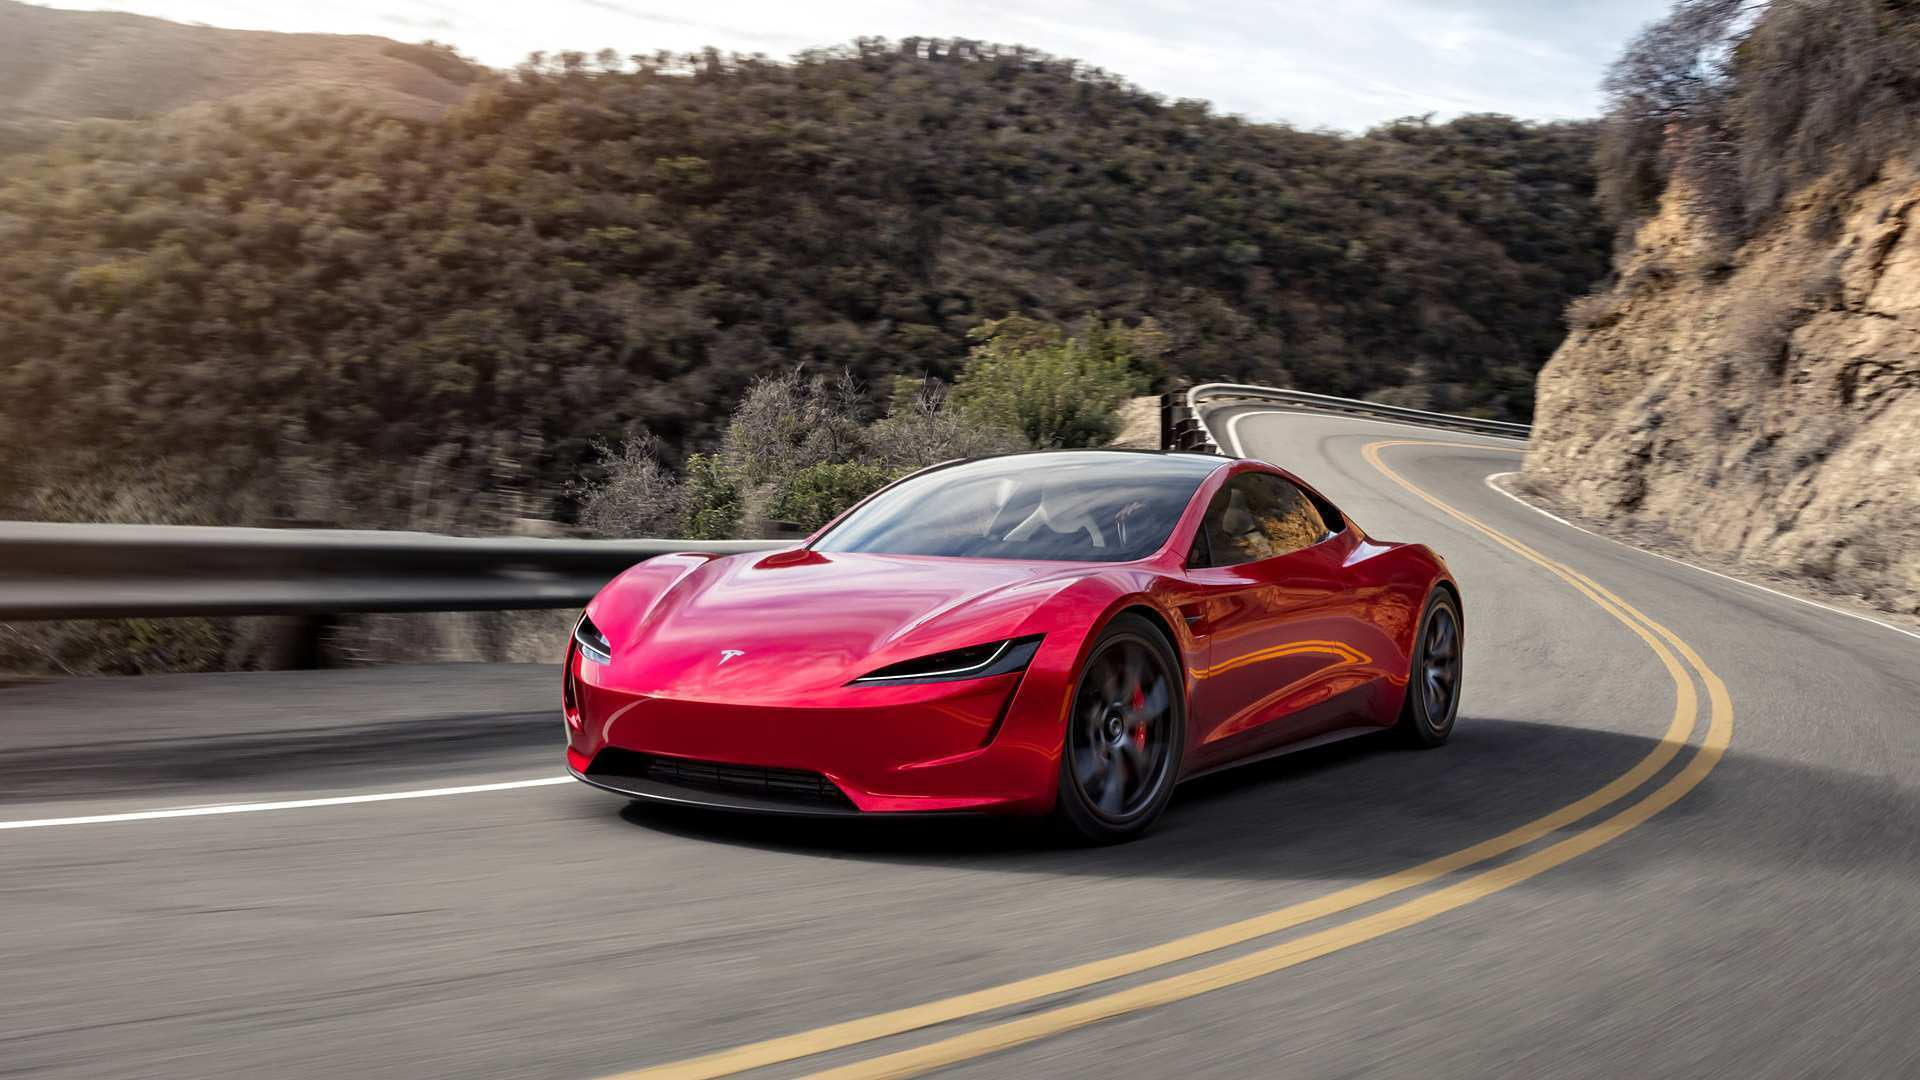 89 All New 2020 Tesla Roadster Video Images by 2020 Tesla Roadster Video